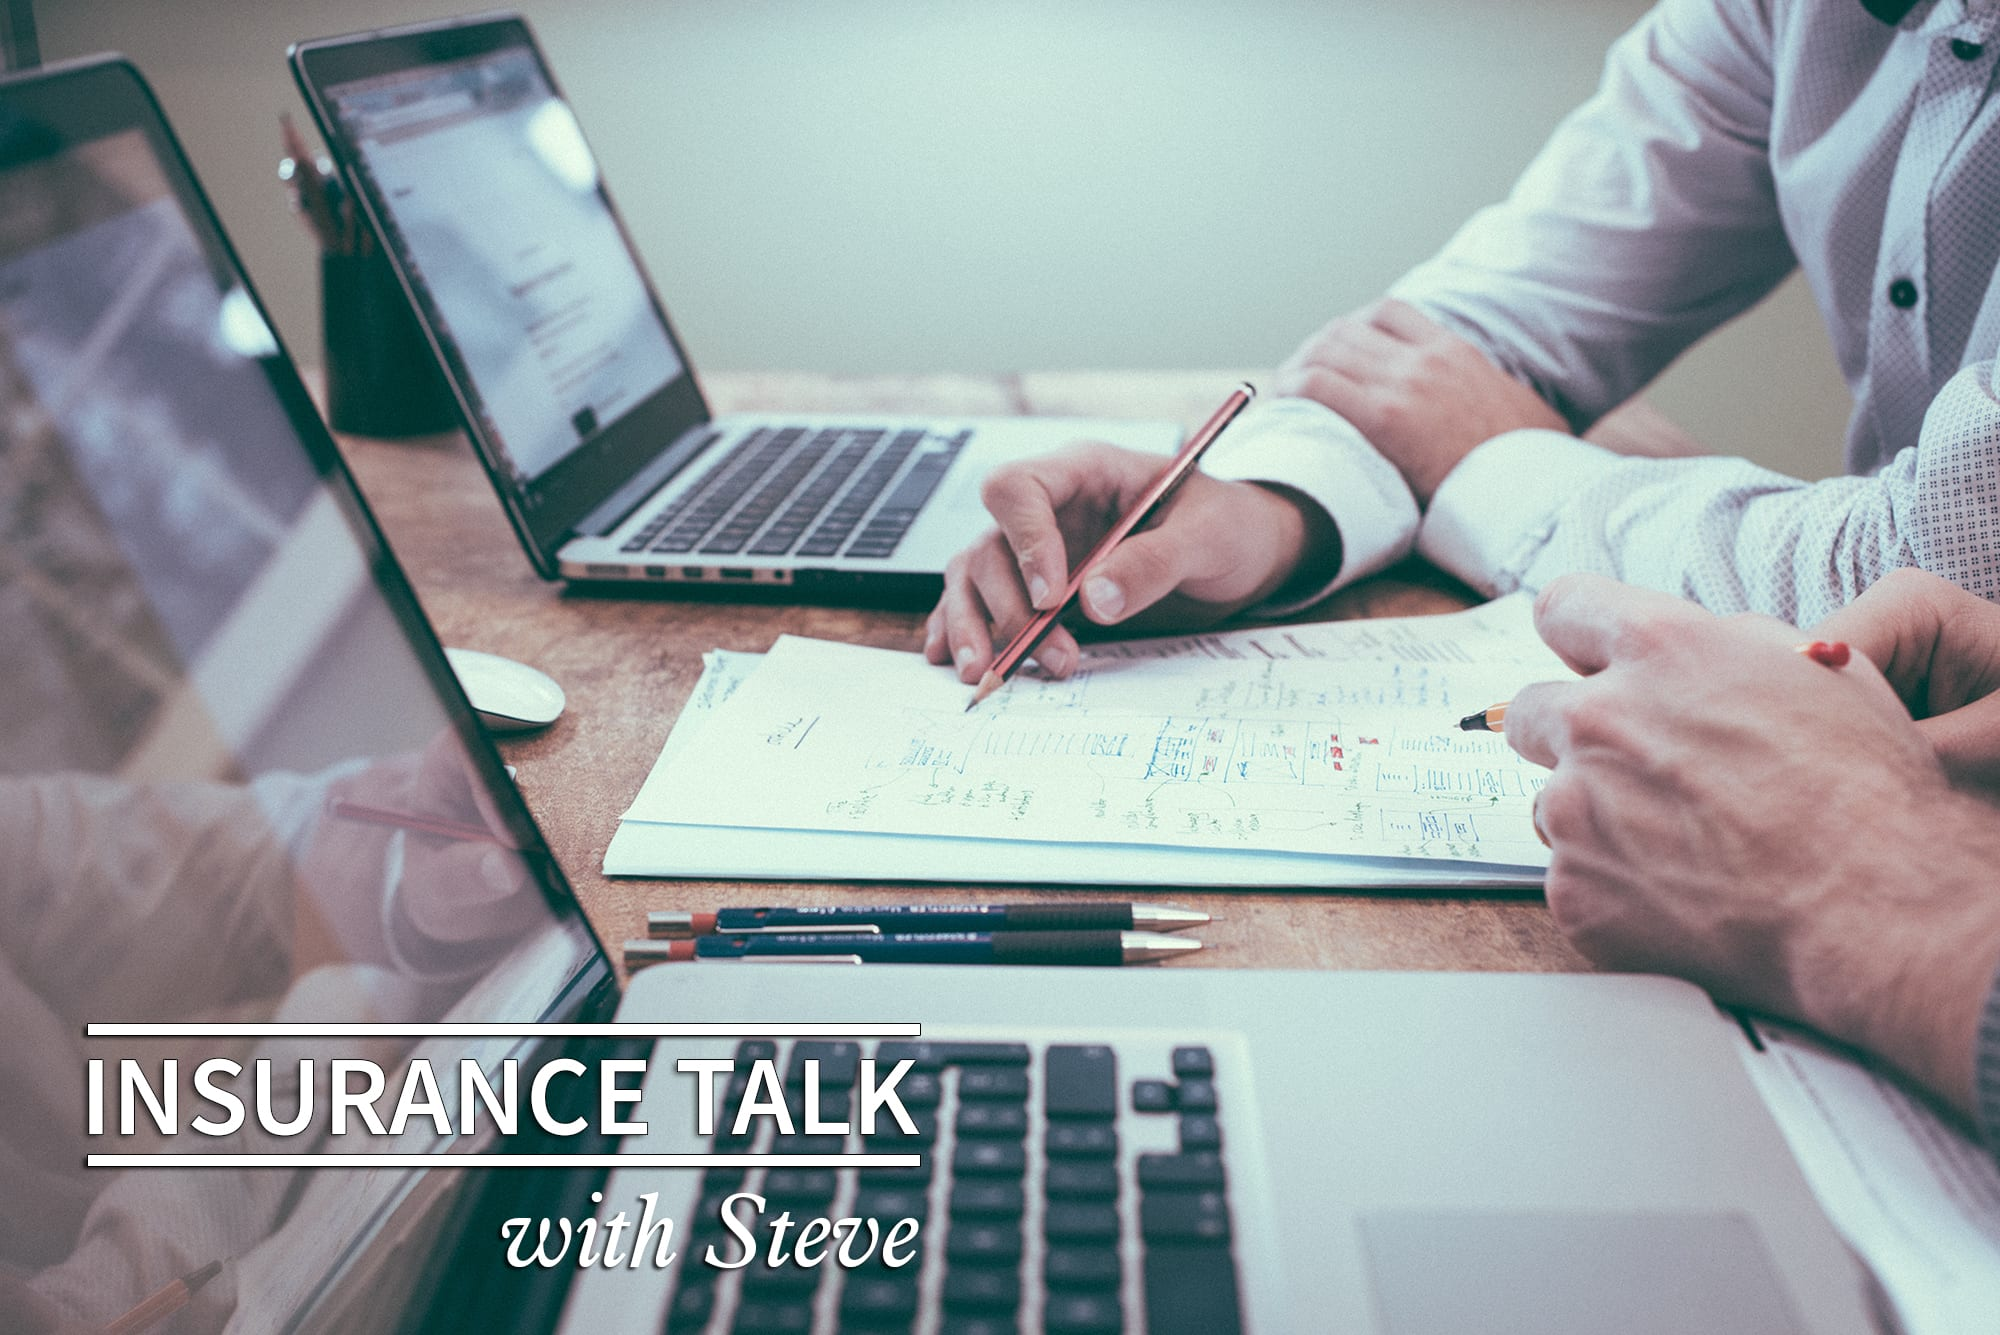 Insurance talk with Steve: Using your car for work might not work for your insurance company